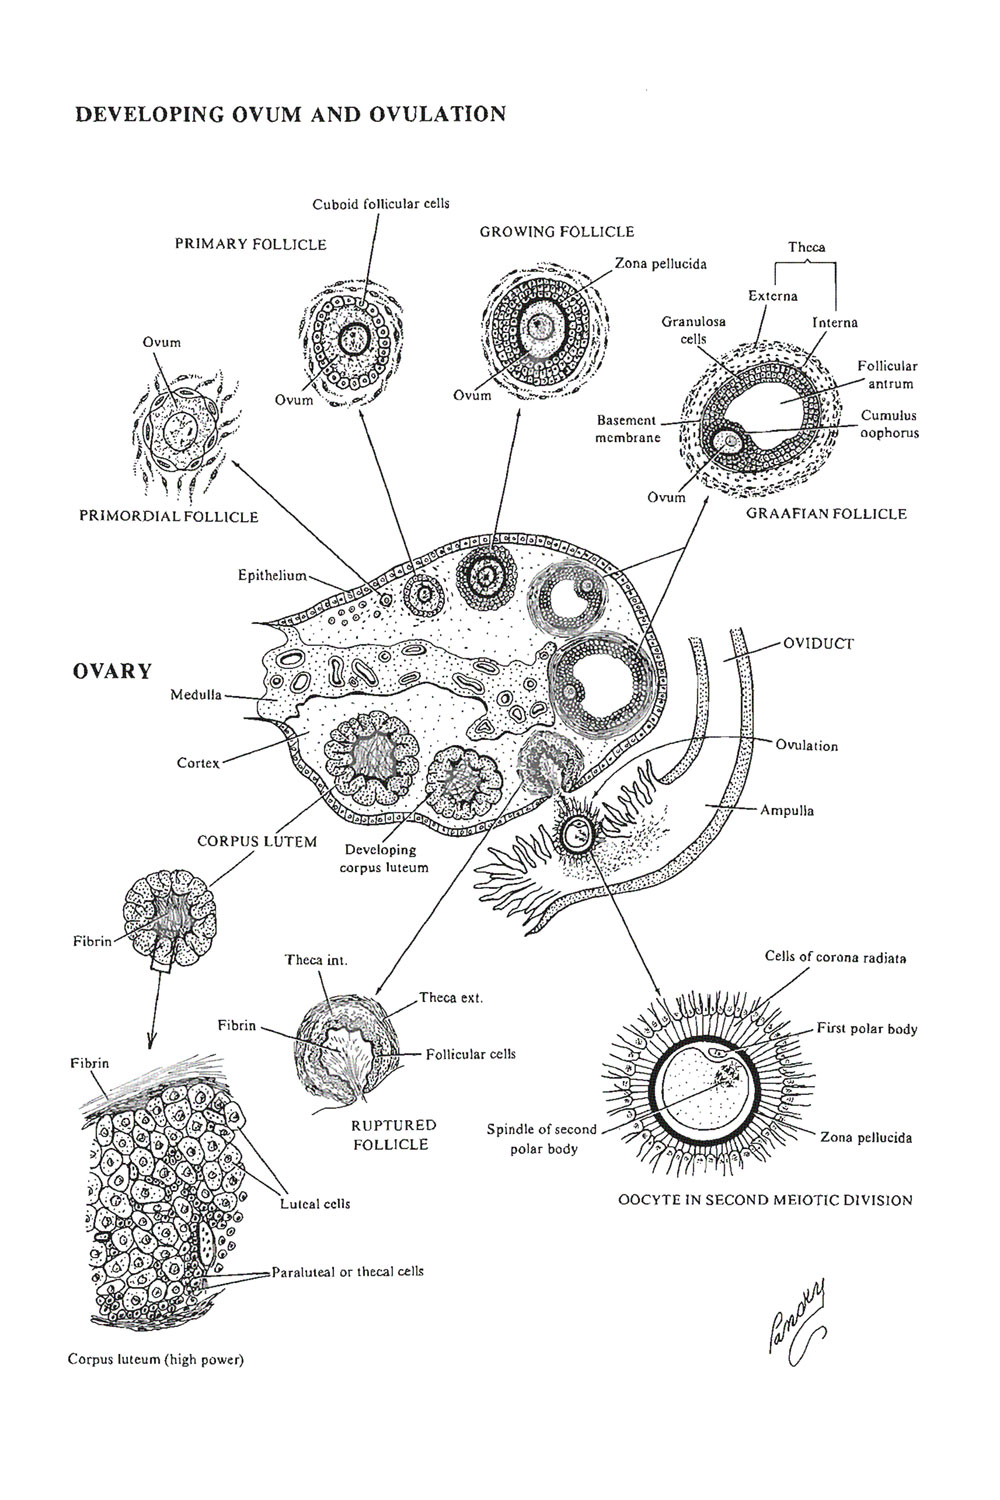 Chapter 8 Reproductive Cycles The Ovarian Cycle And Ovulation